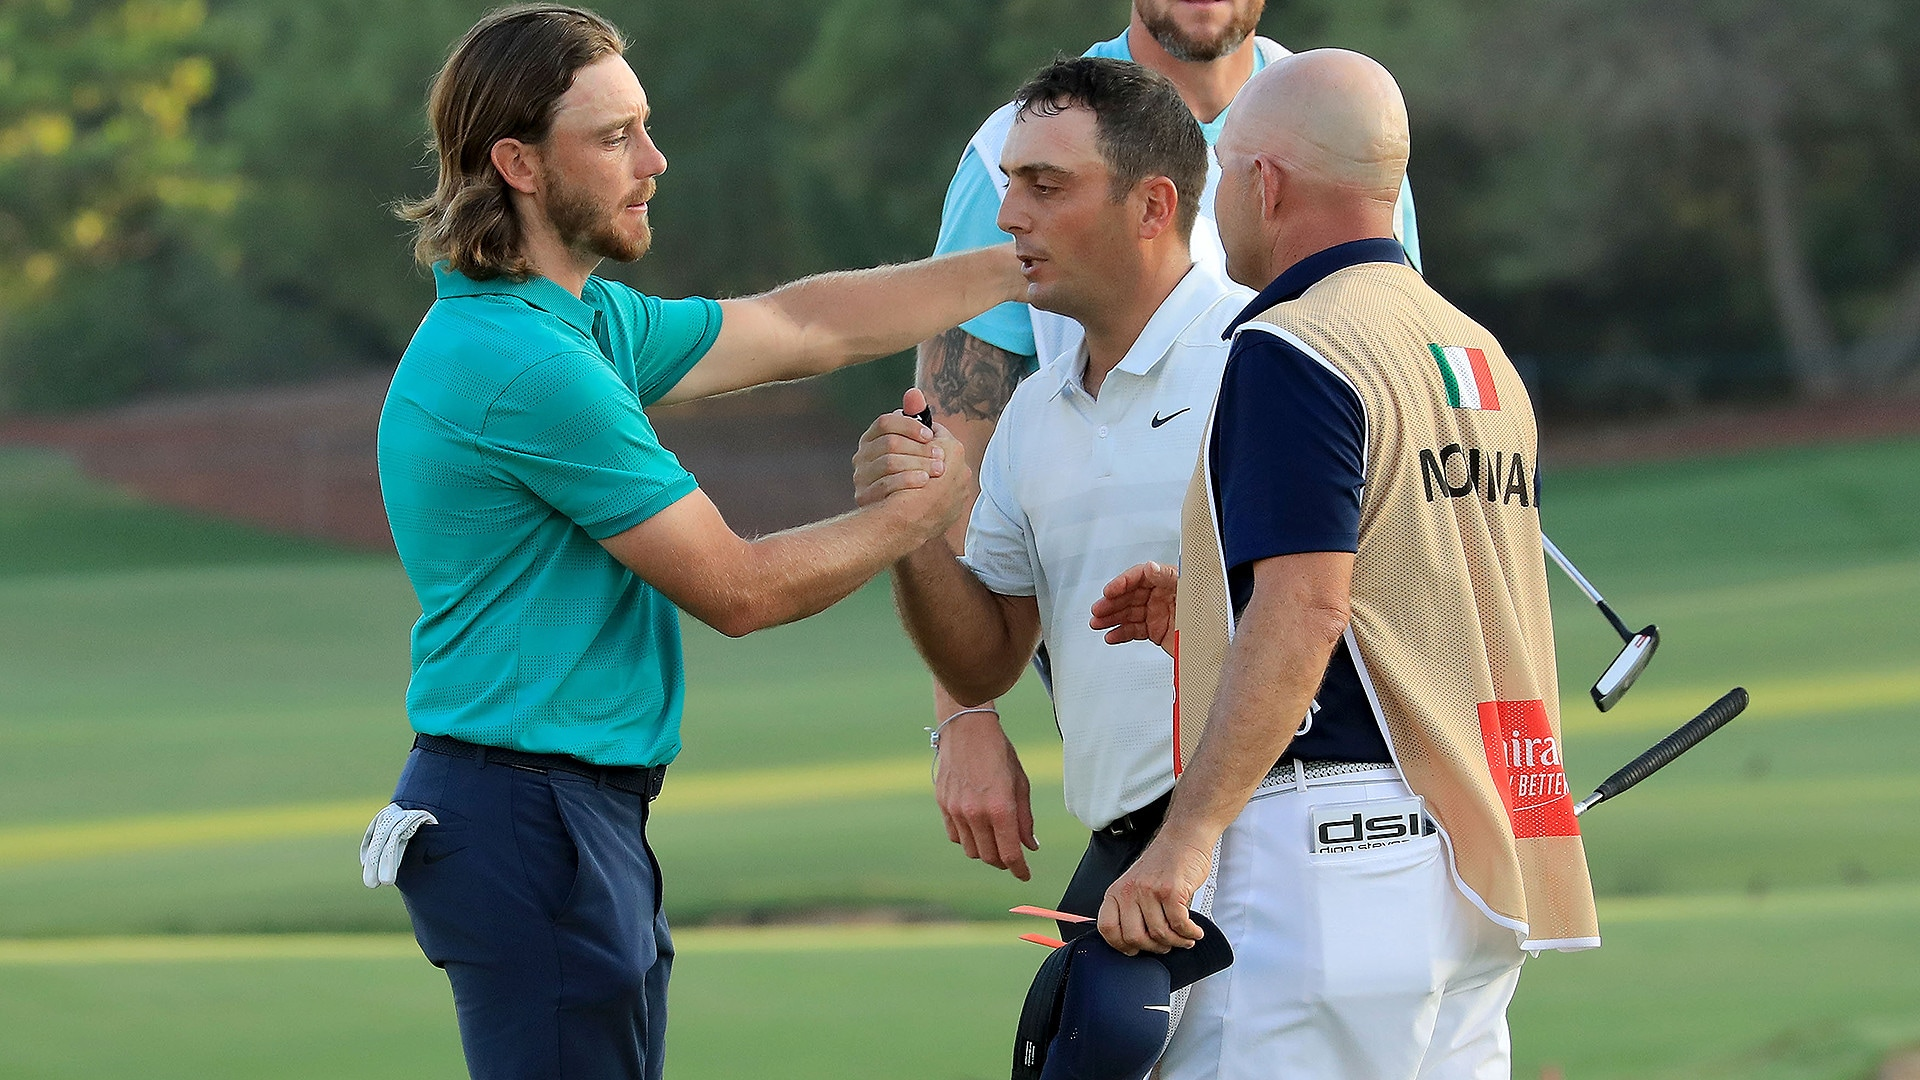 Tommy Fleetwood, Francesco Molinari